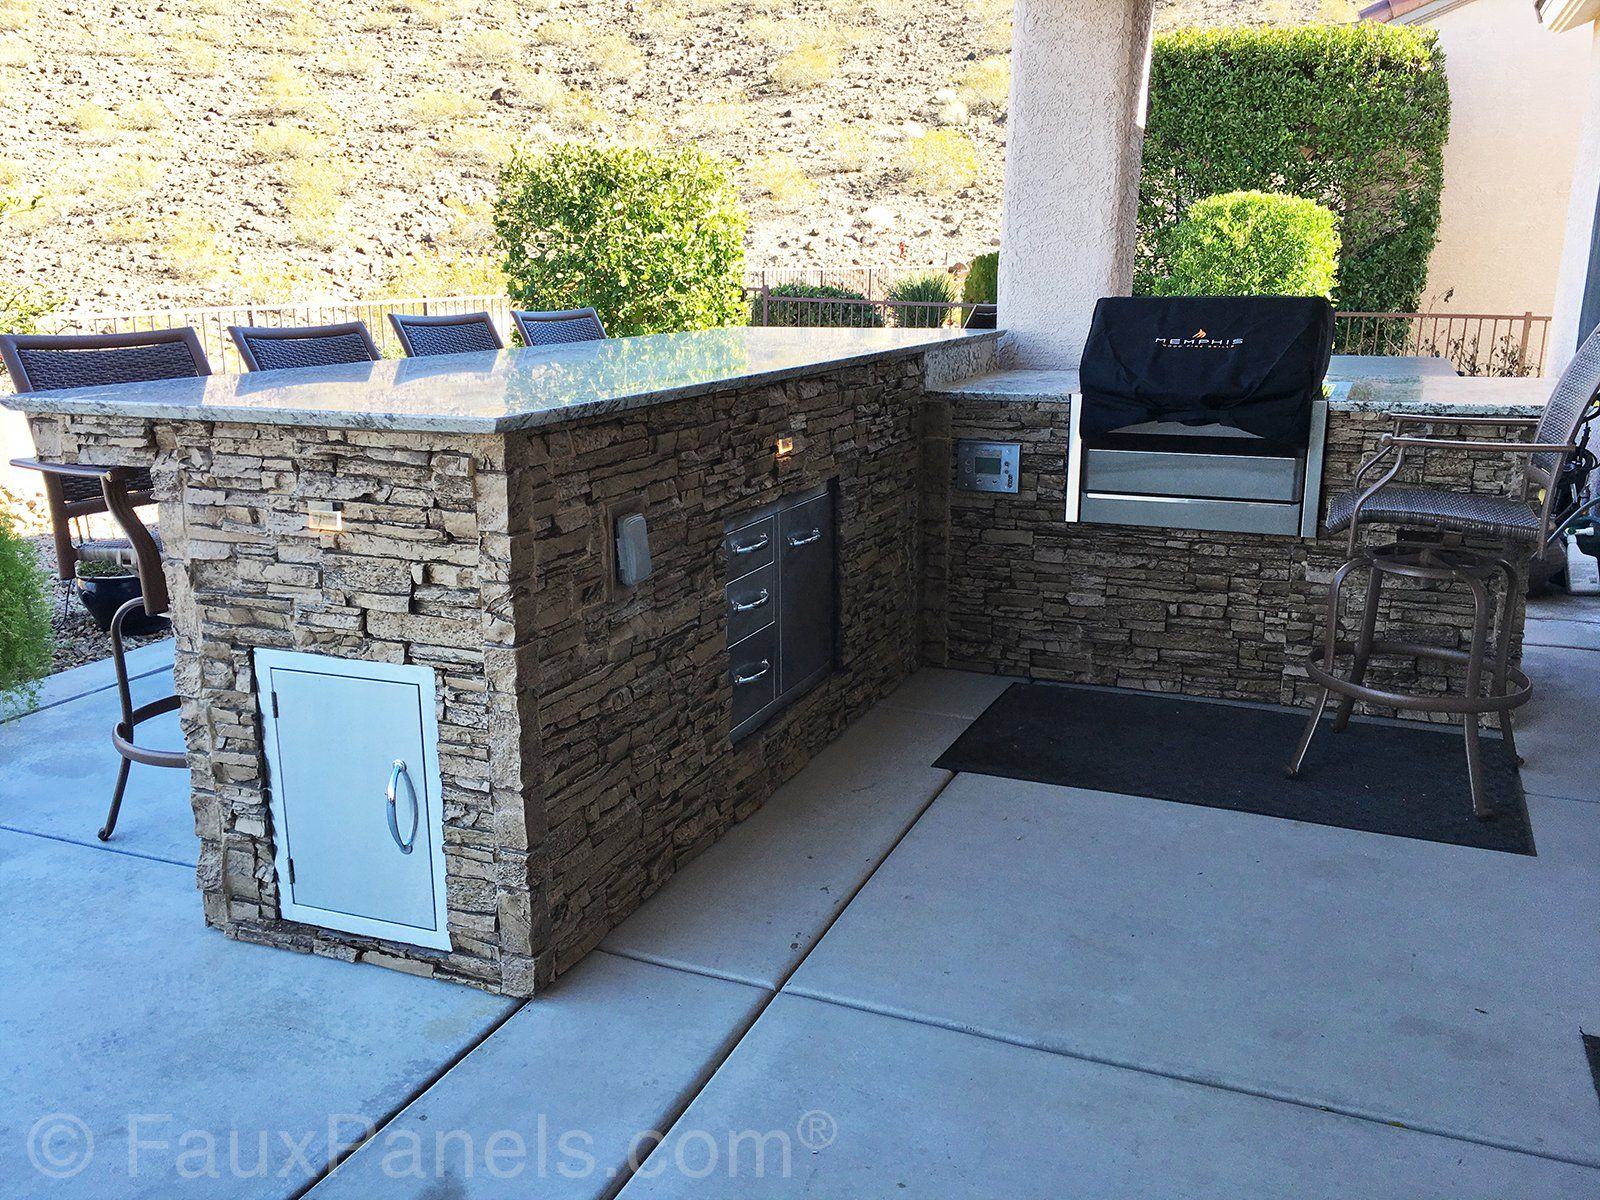 Commercial Amp Home Renovation Ideas Stone Siding Photos Outdoor Grill Station Outdoor Kitchen Patio Renovation